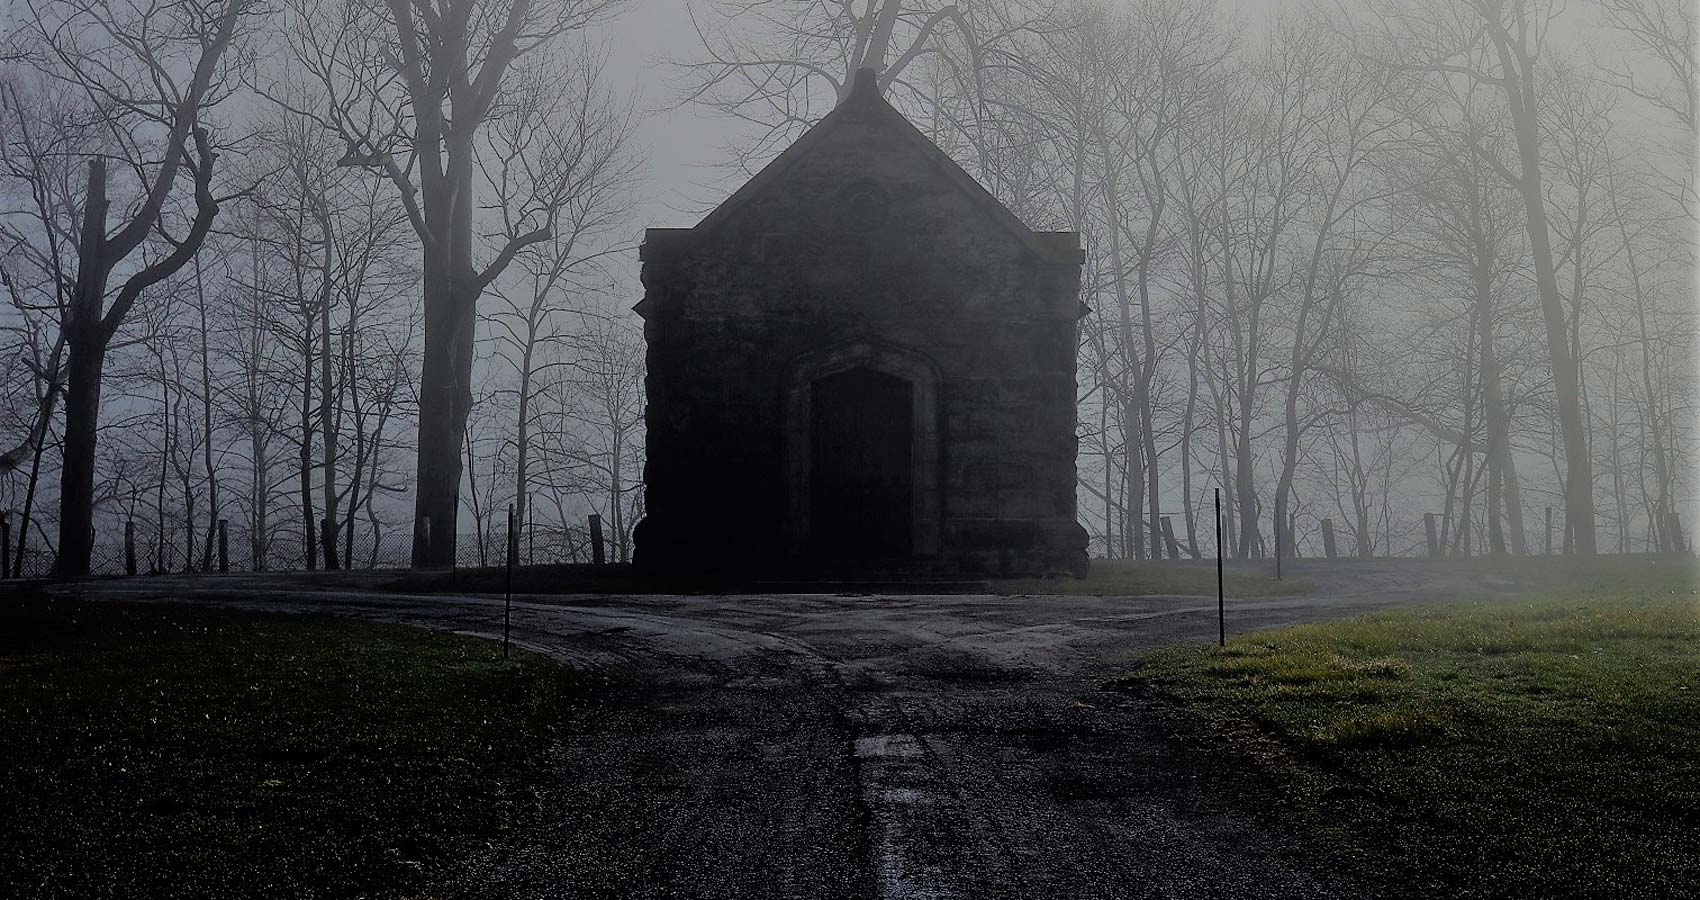 Shrine, a micropoetry written by Melyssa G. Sprott at Spillwords.com